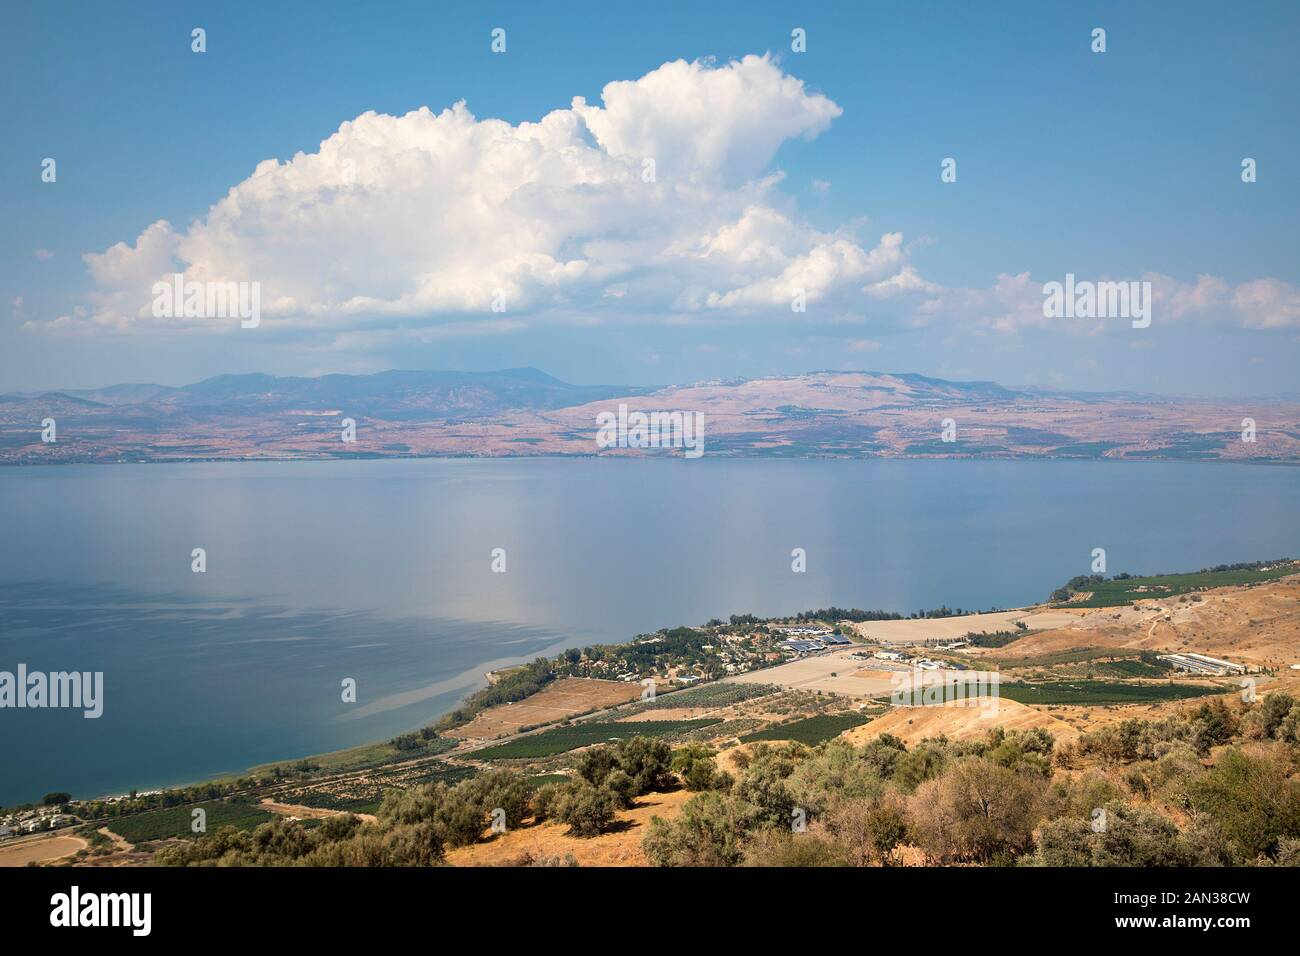 Sea of Galilee, Israel's largest freshwater lake Stock Photo